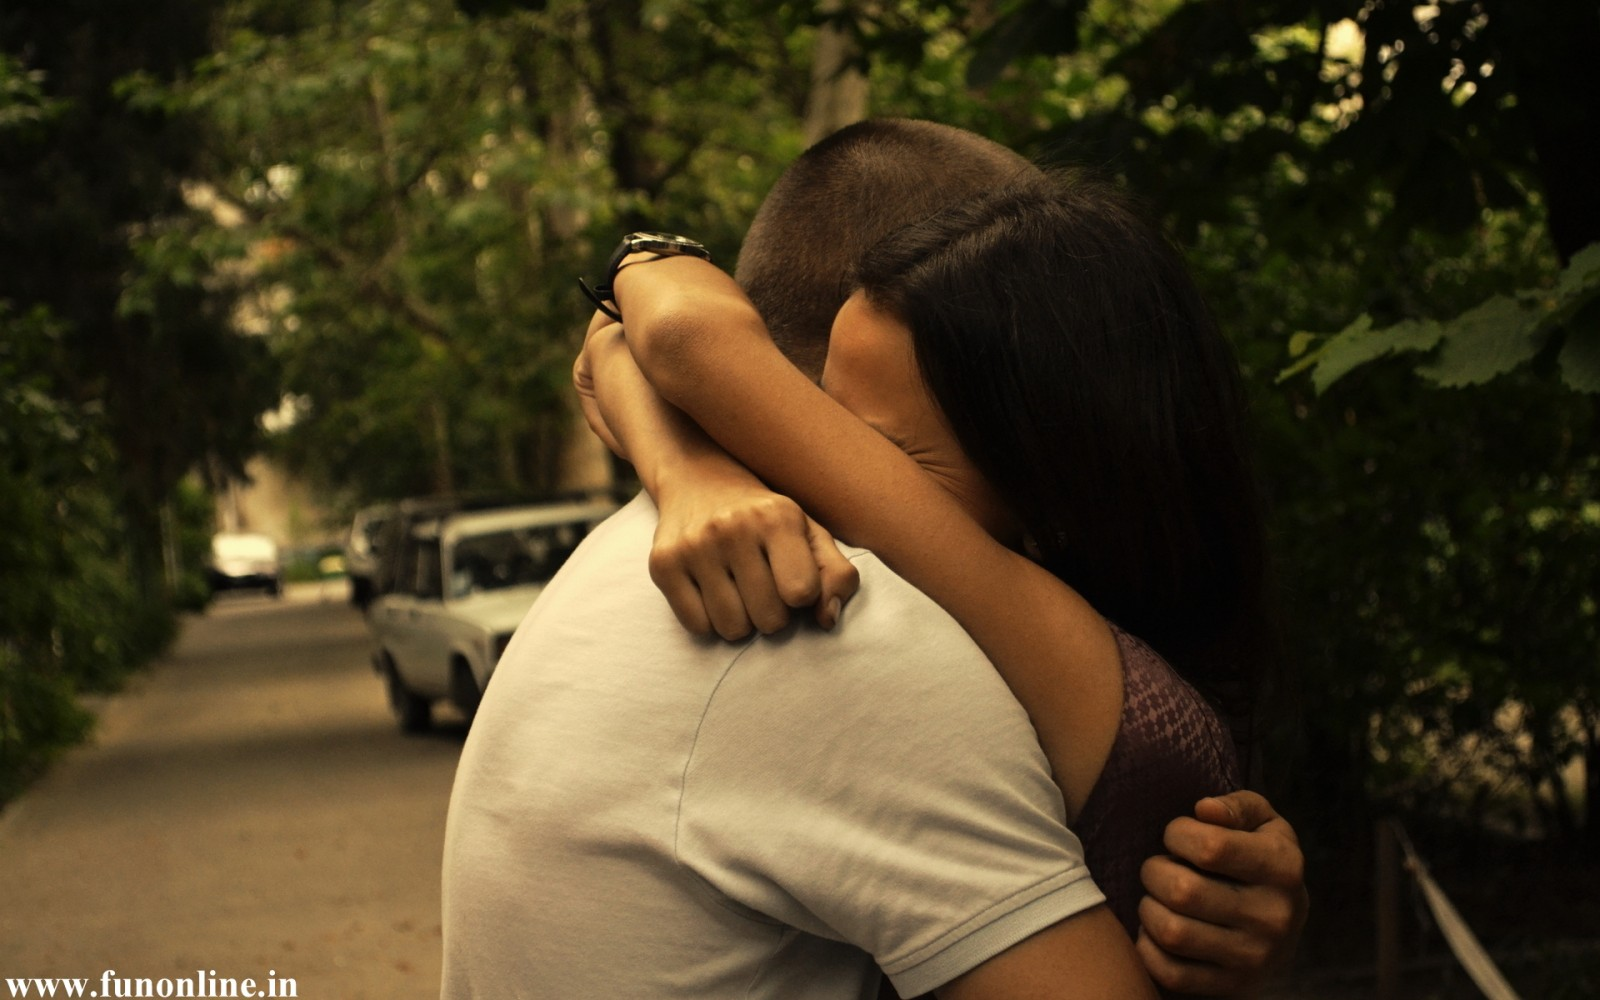 Cute-Couple-having-tight-Hug-e1337602758